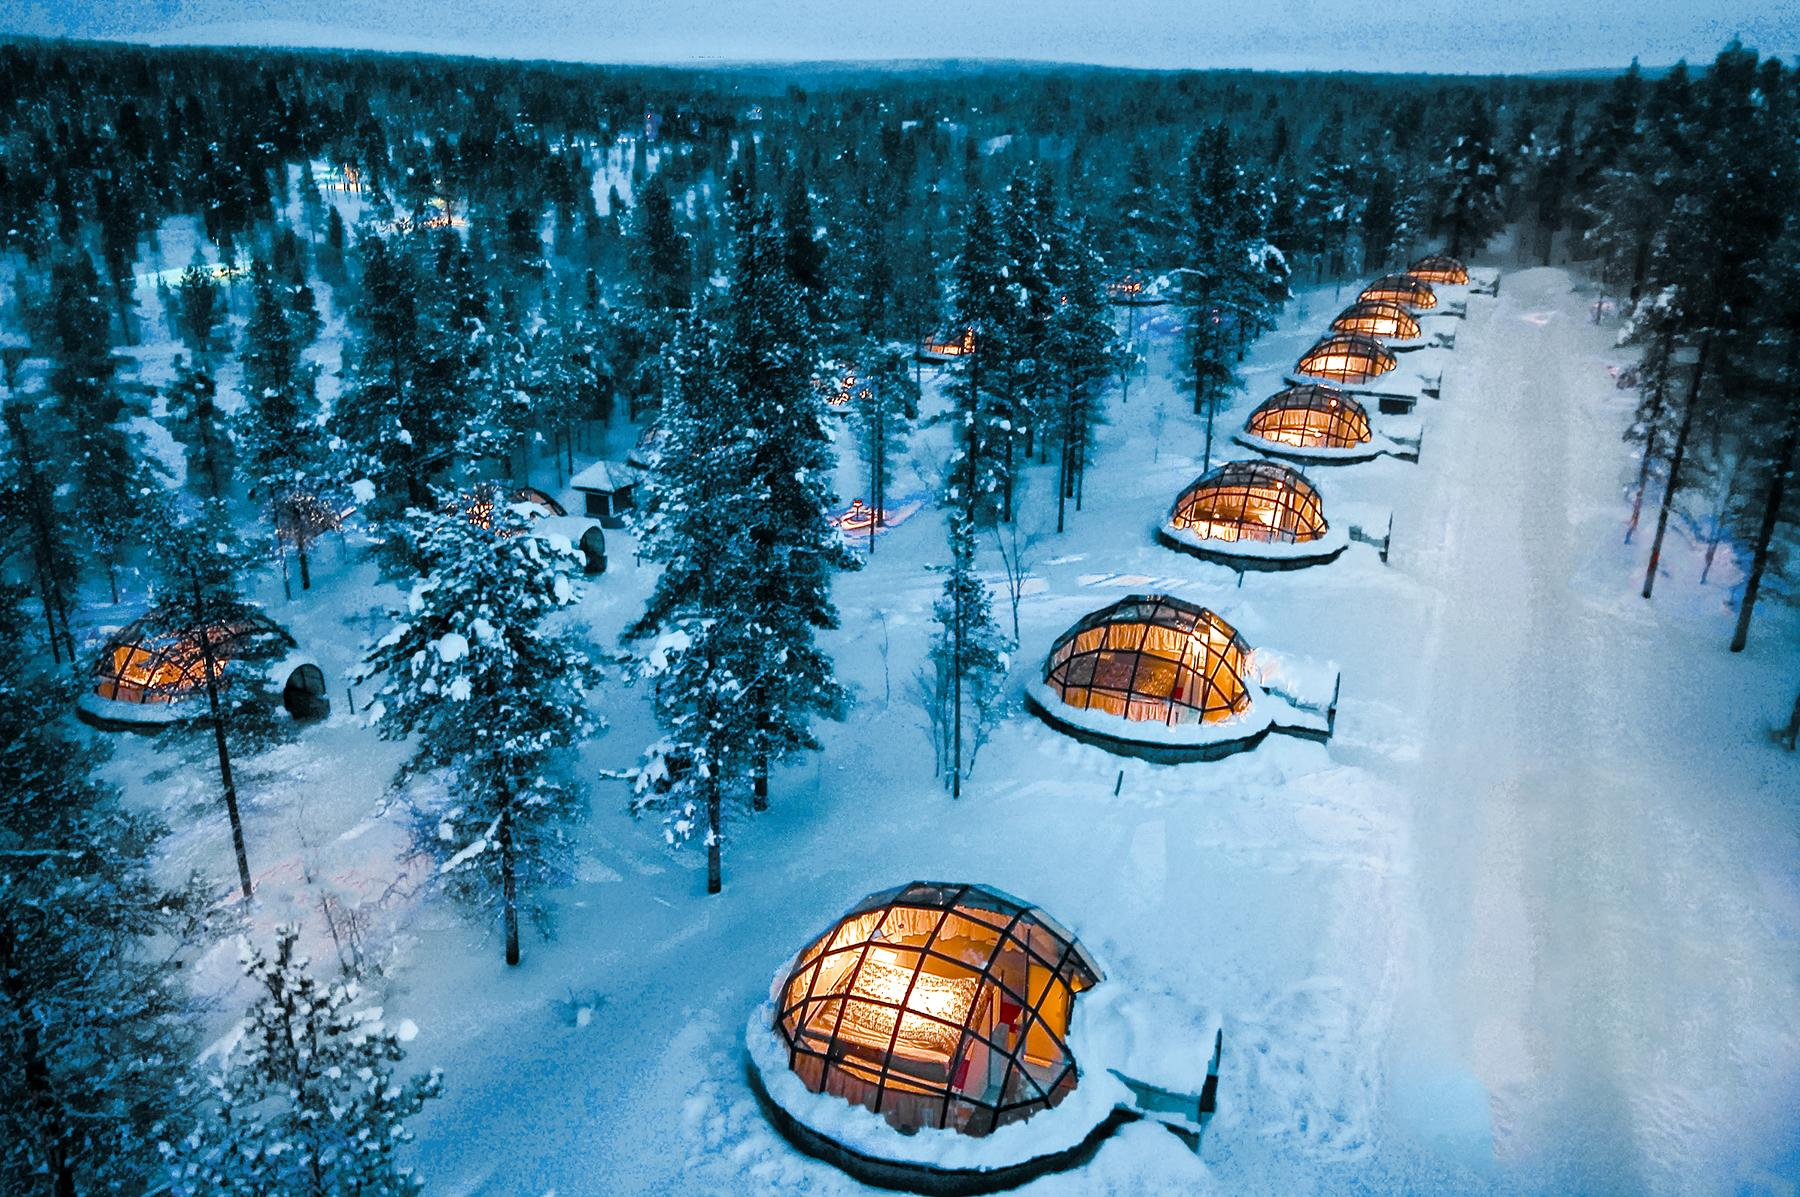 What It's Really Like to Spend the Night in an Igloo in Lapland, Finland